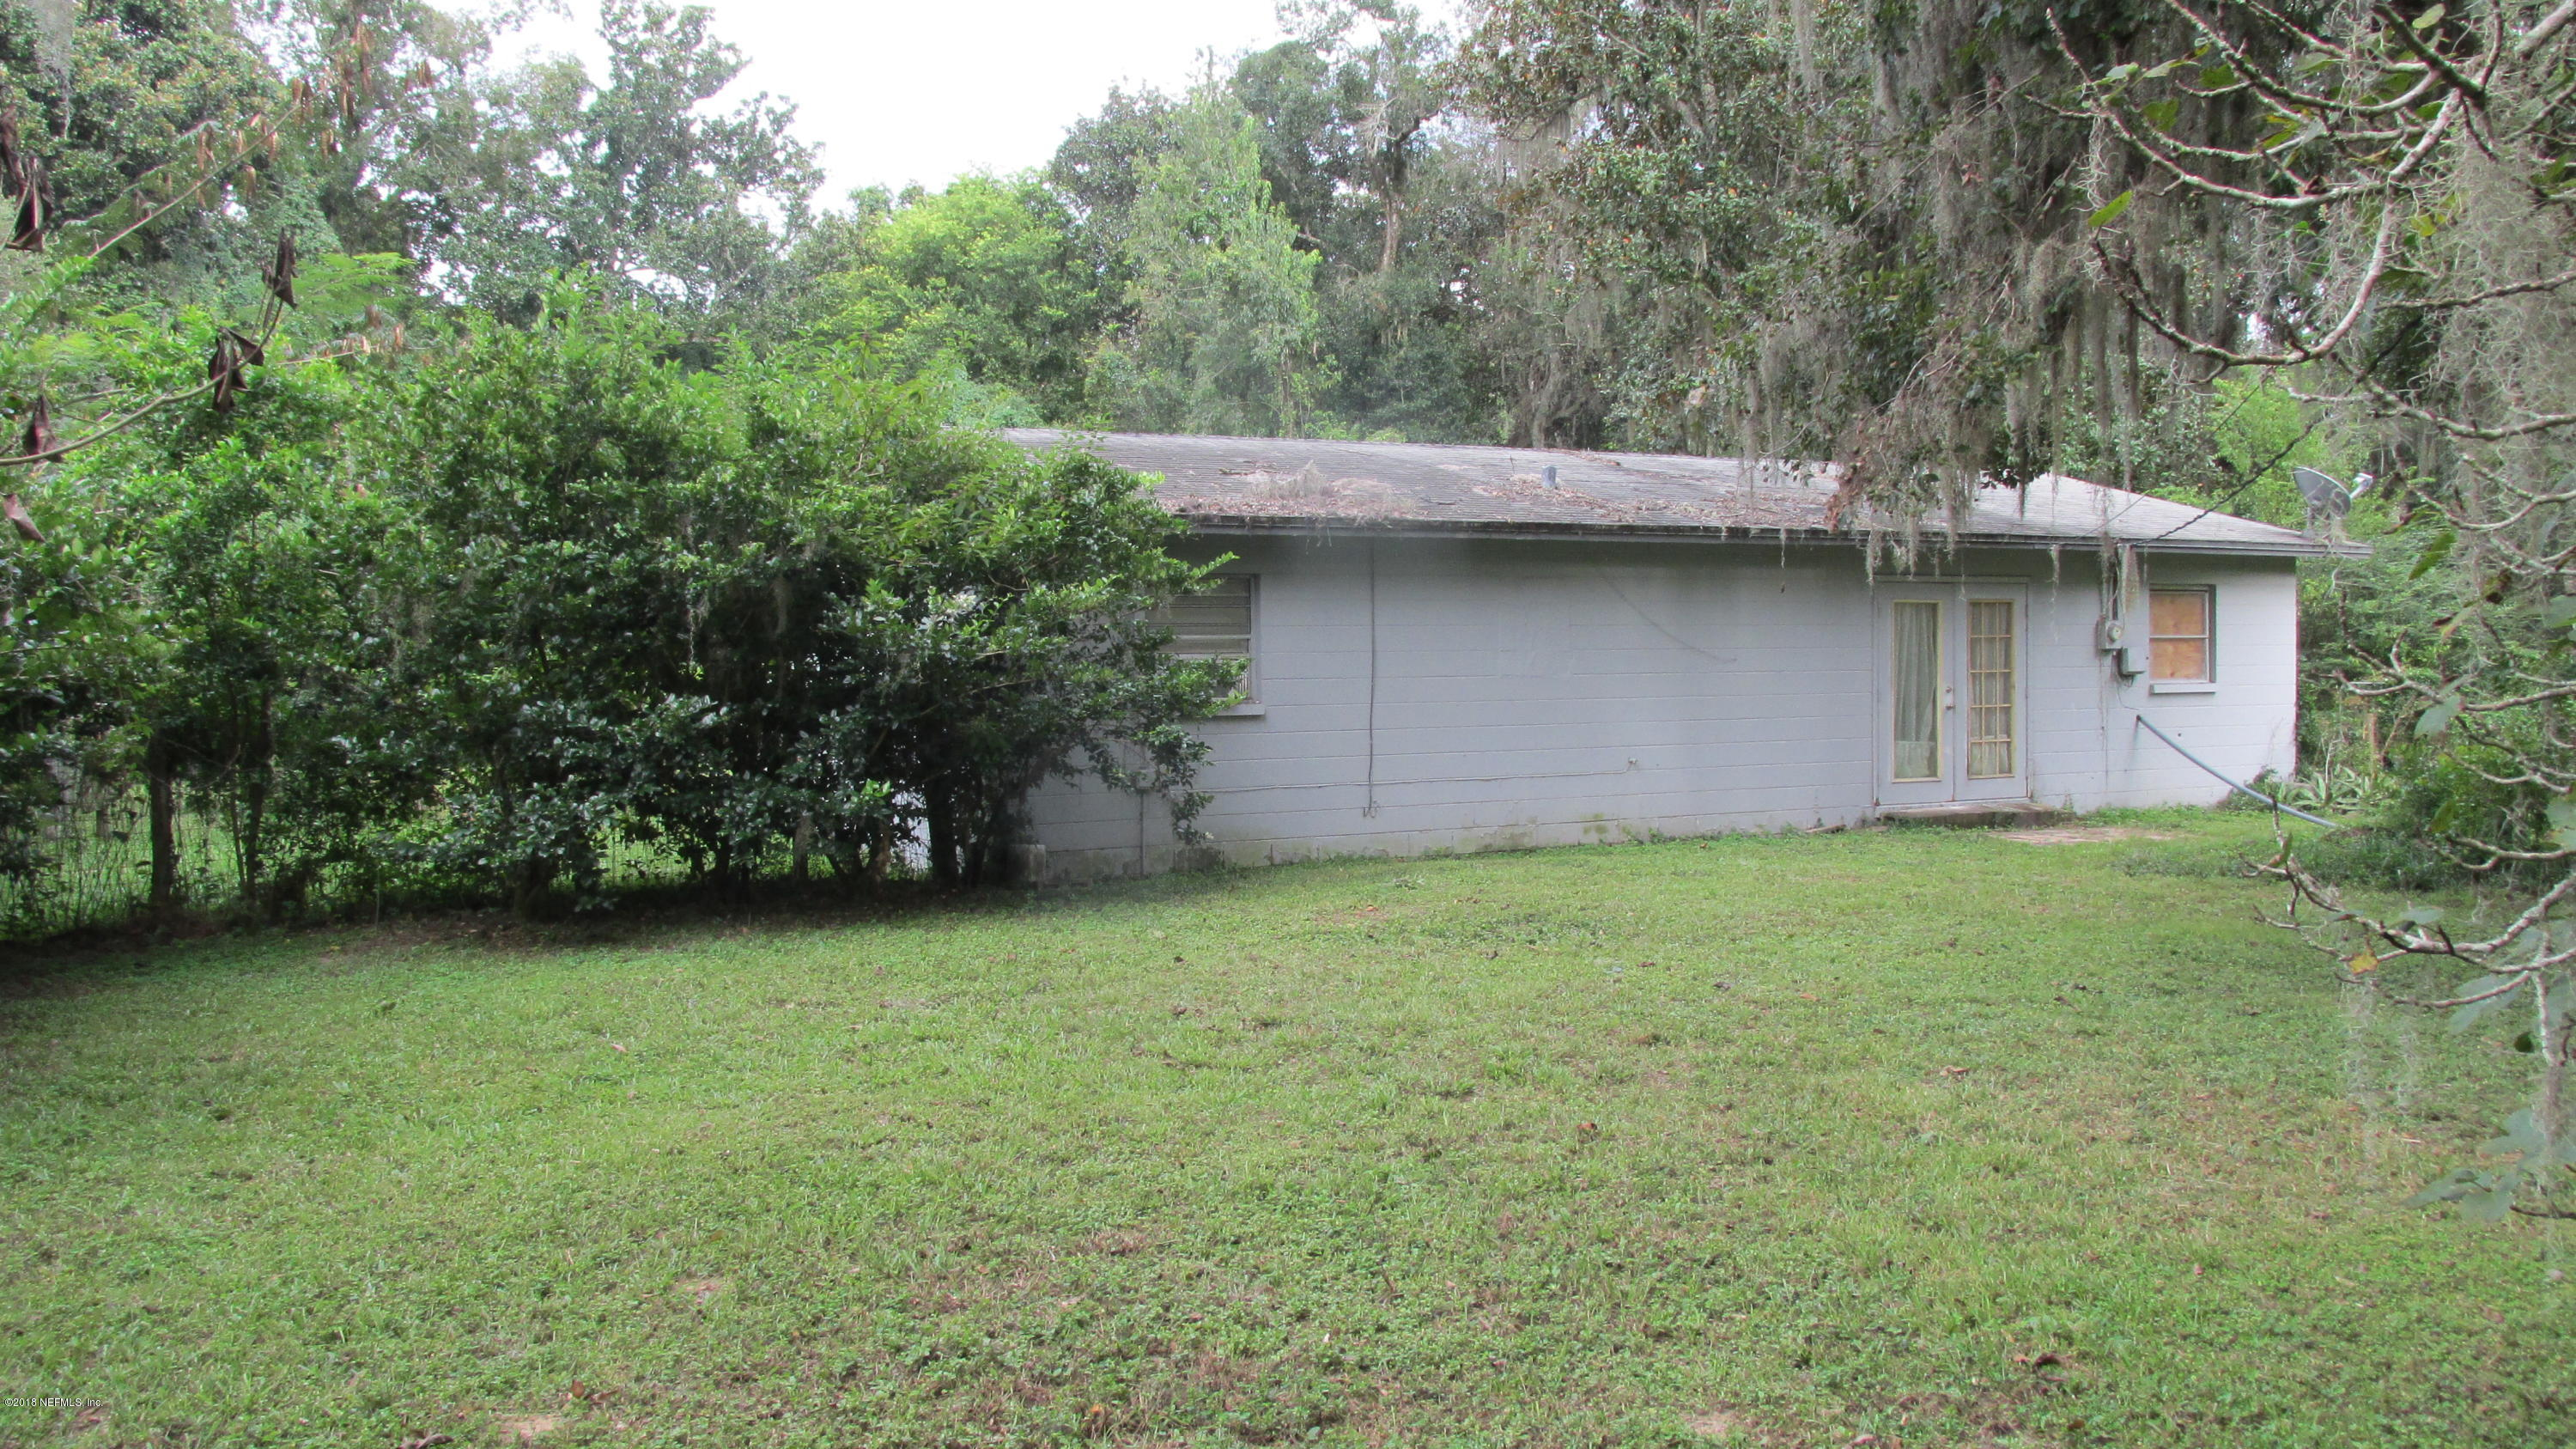 328 71ST, GAINESVILLE, FLORIDA 32641, 3 Bedrooms Bedrooms, ,1 BathroomBathrooms,Residential - single family,For sale,71ST,952647